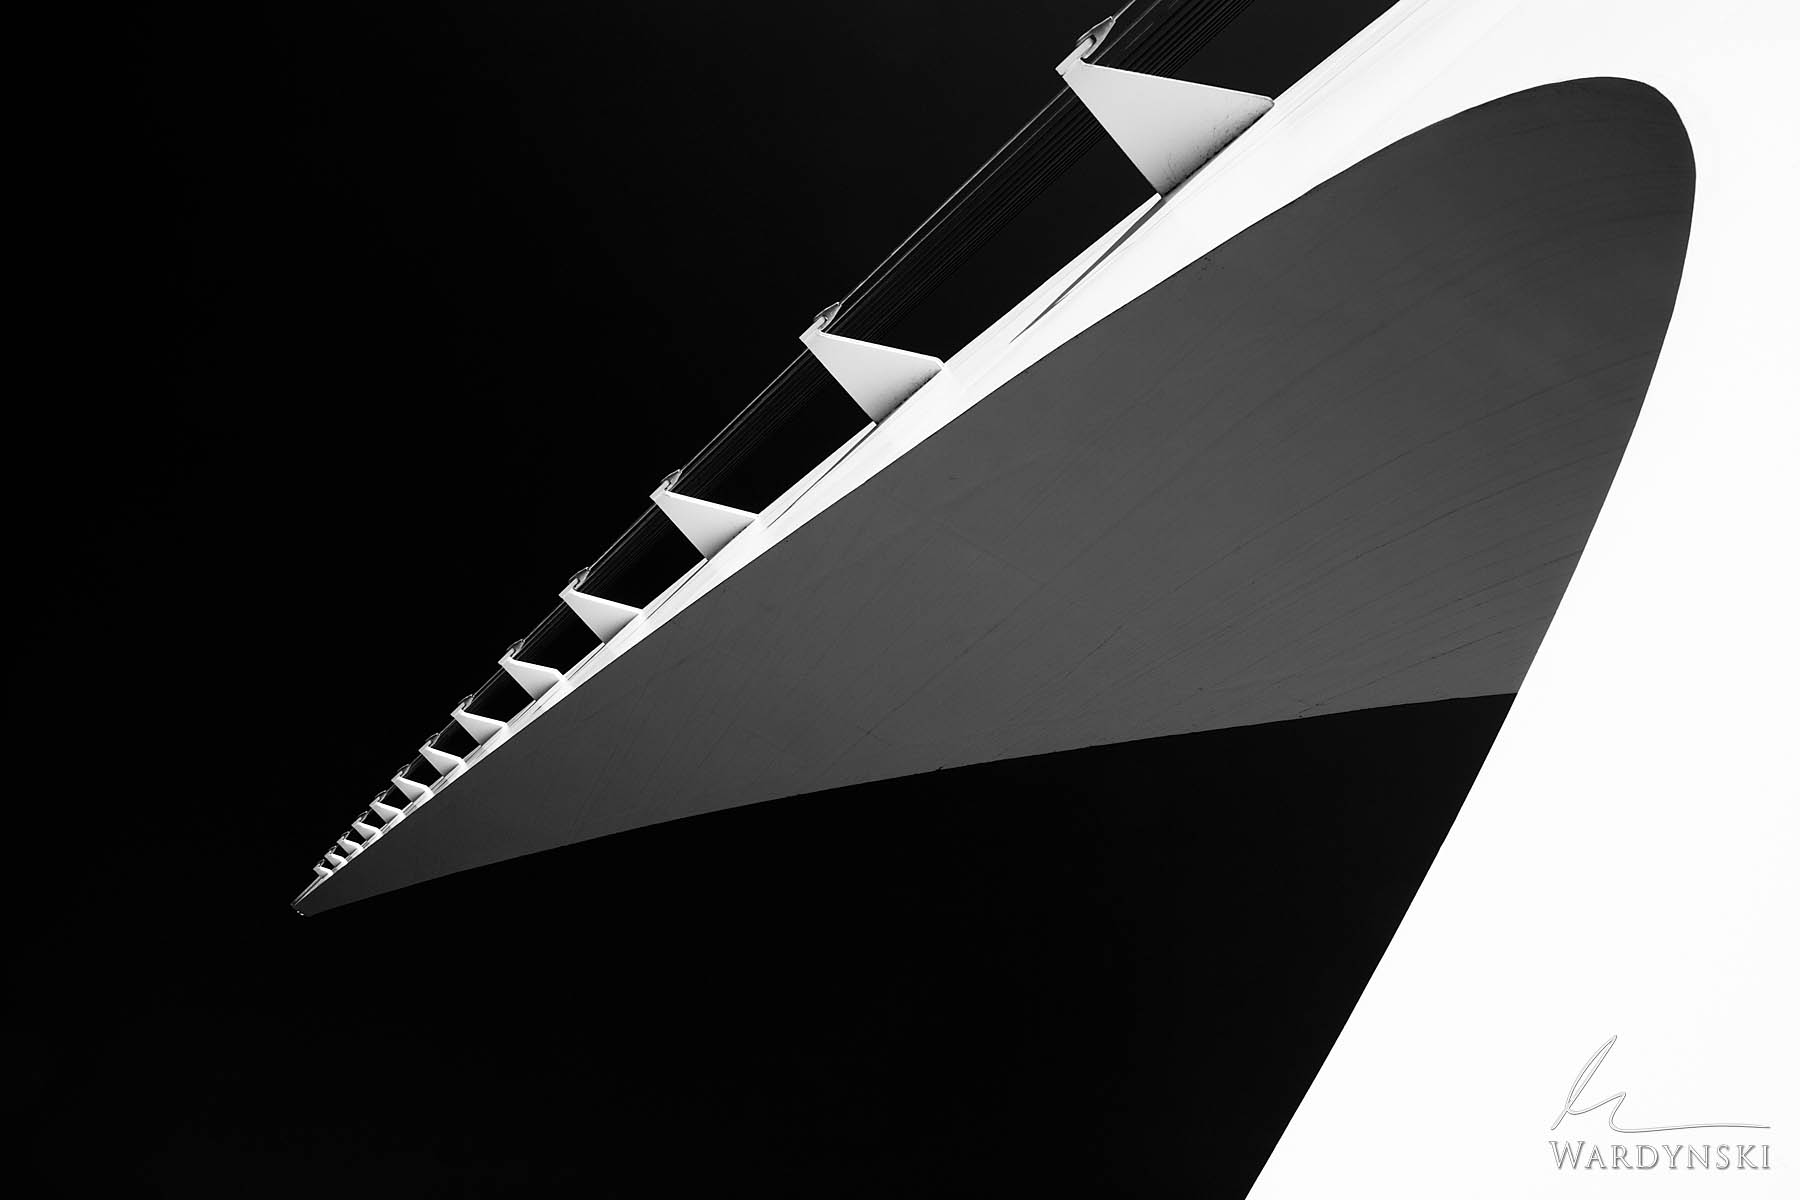 Black and White Fine Art Print | Limited Edition of 25  The mast of the Sundial Bridge in Redding California shoots 217 feet...